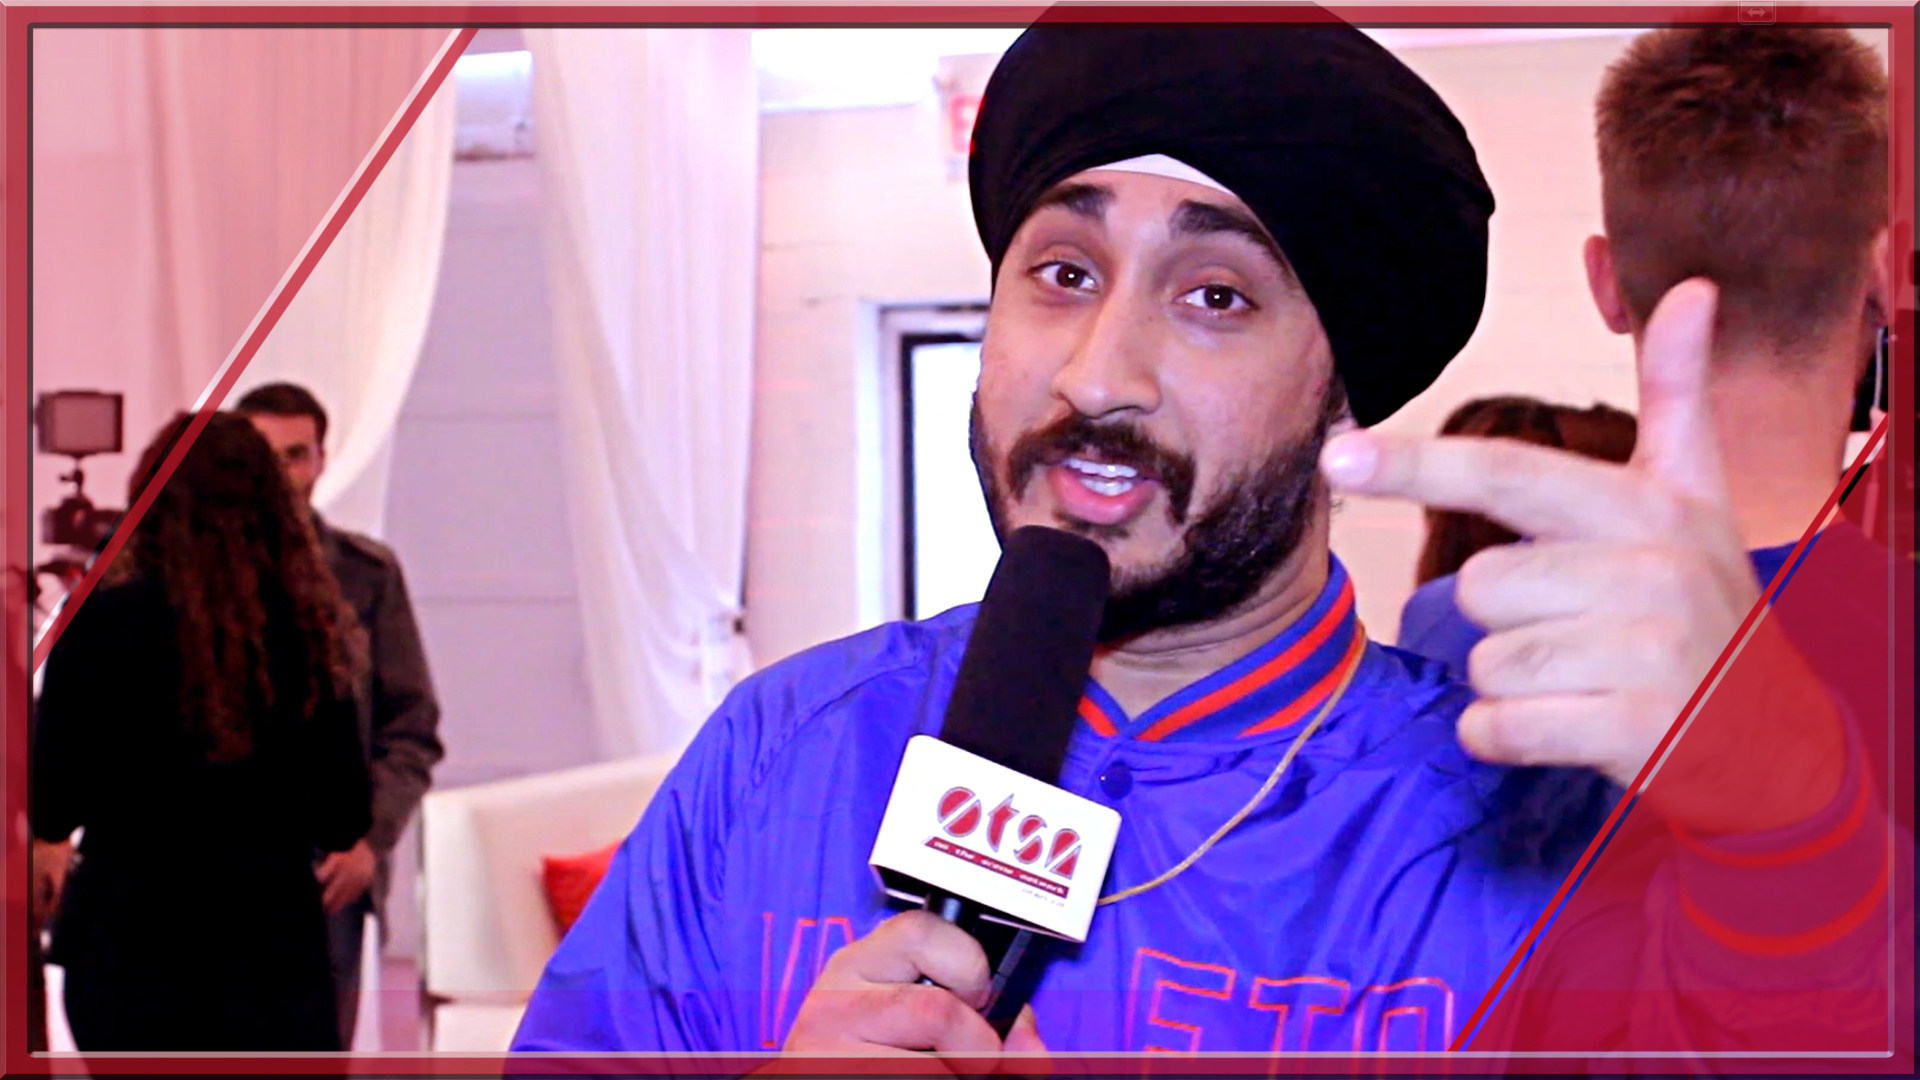 JusReign interview at YouTube Fan Fest 2015